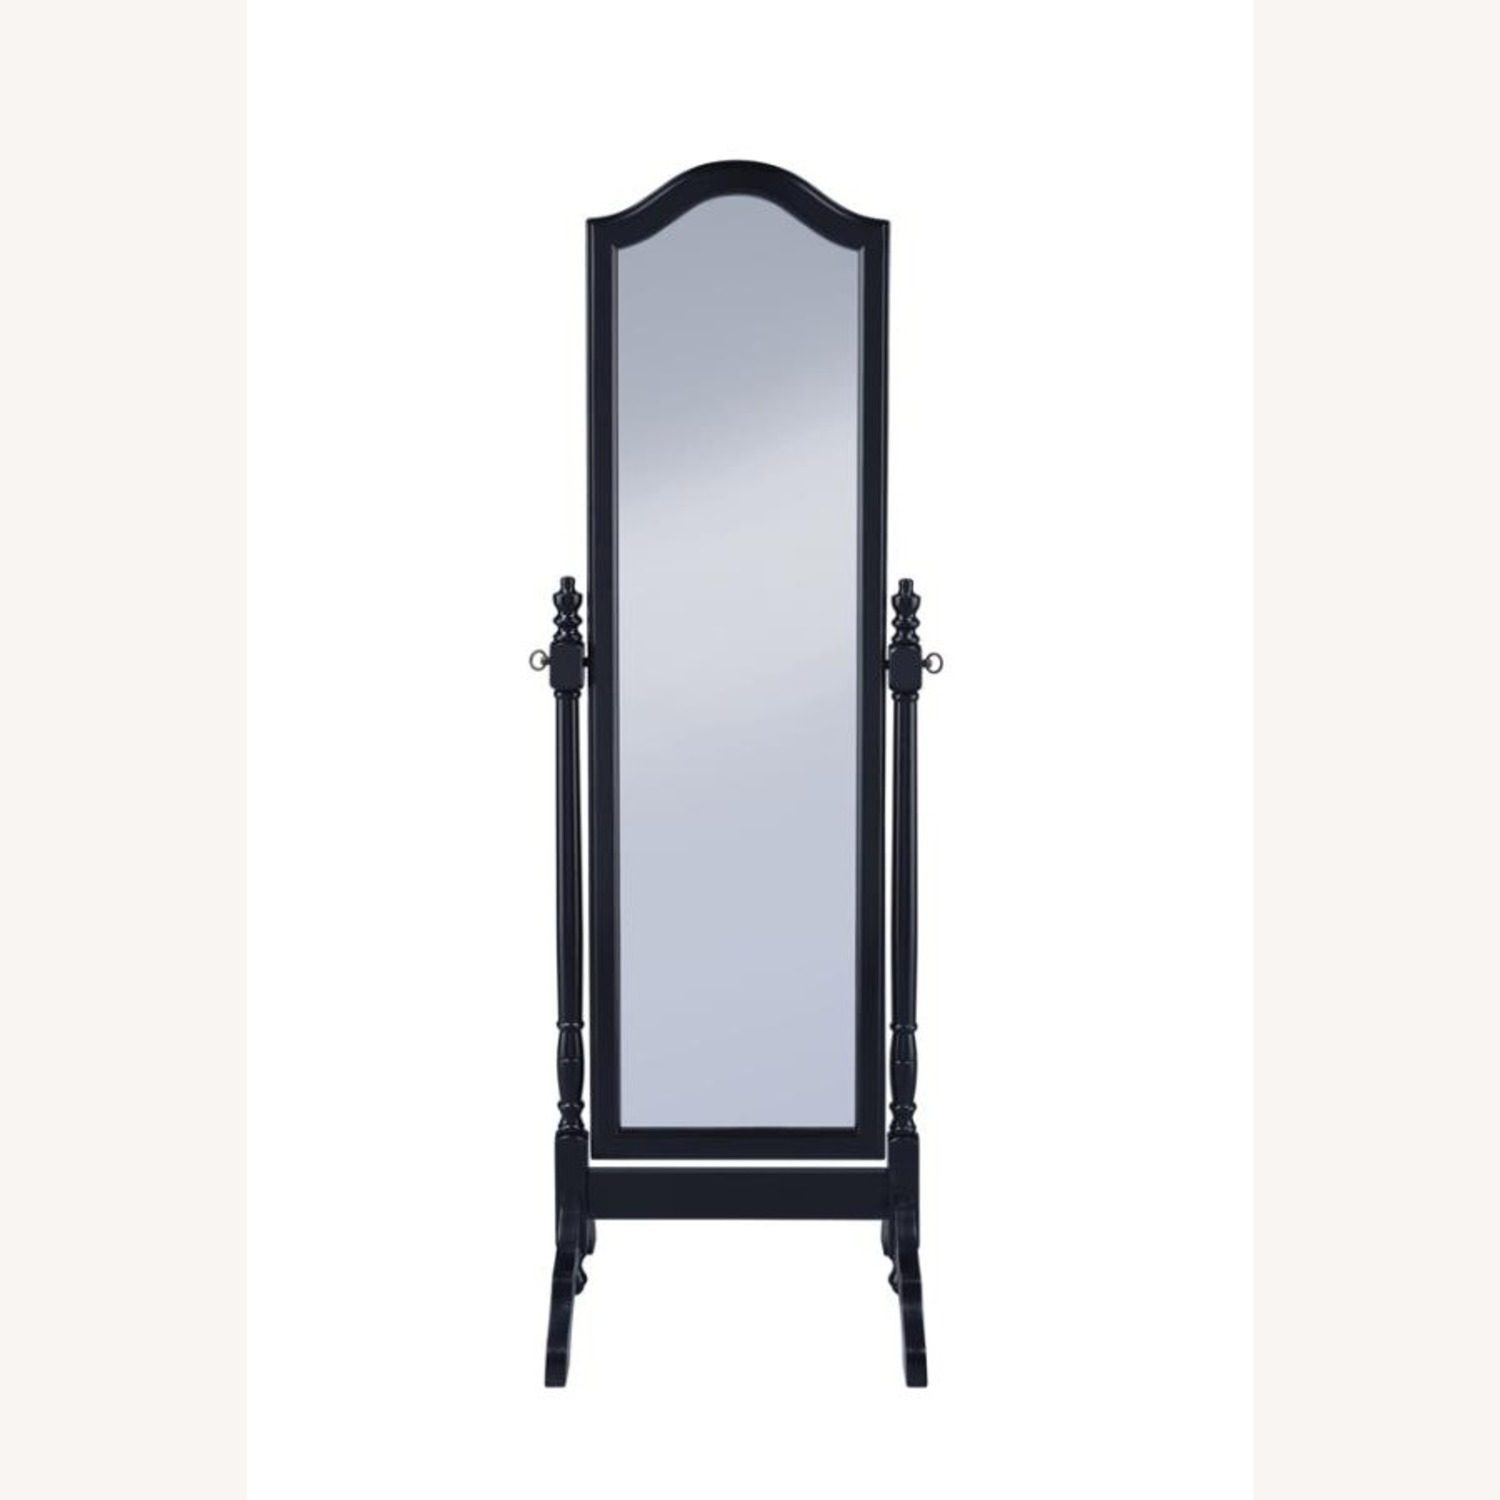 Cheval Mirror In Black Finish W/ Turned Posts - image-1